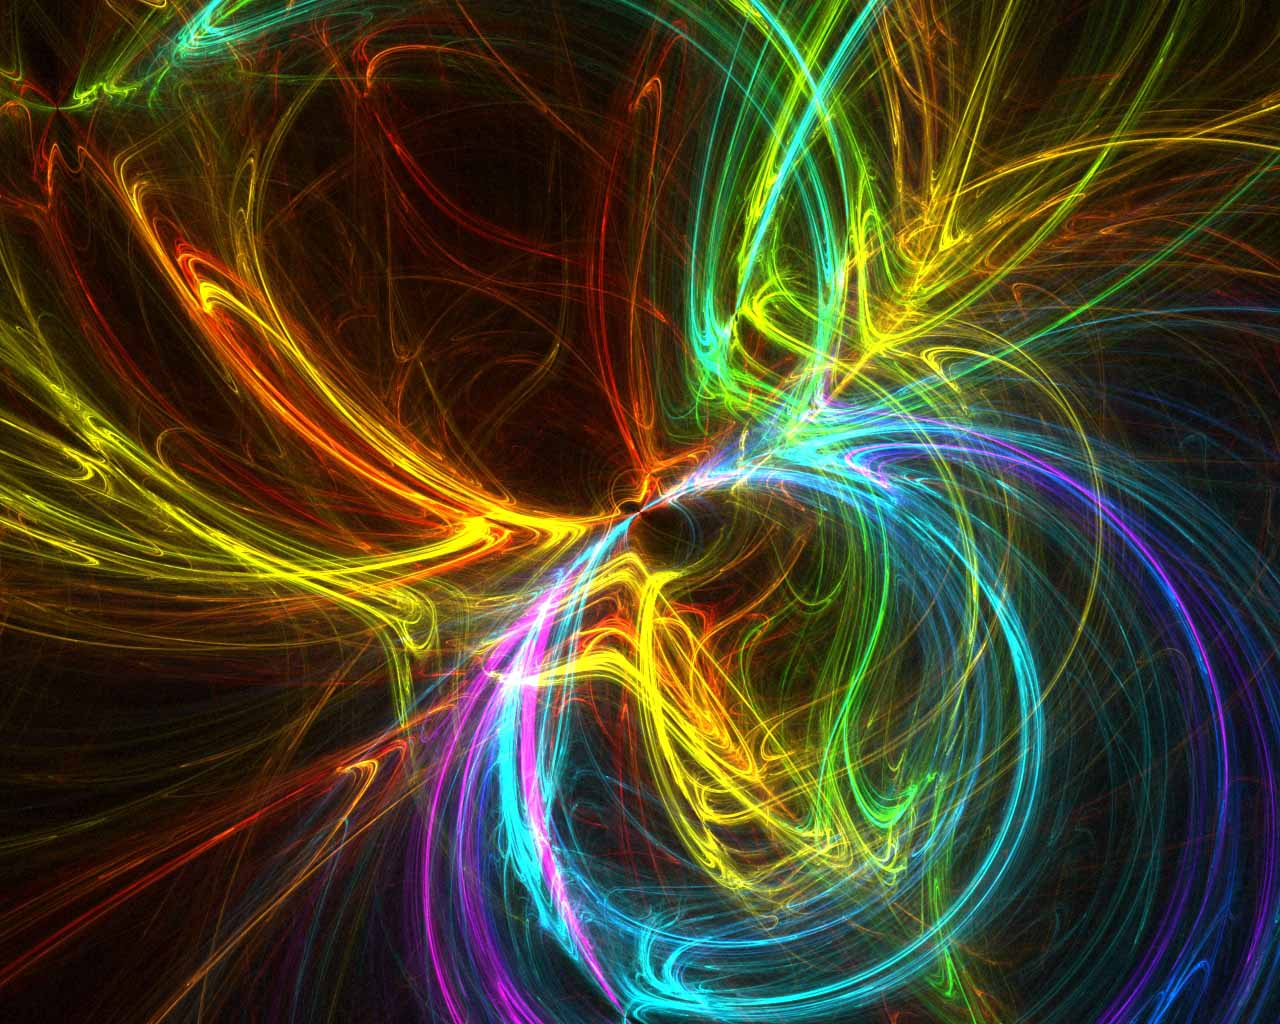 Colorful Swirls Wallpapers | HD Wallpapers Pics